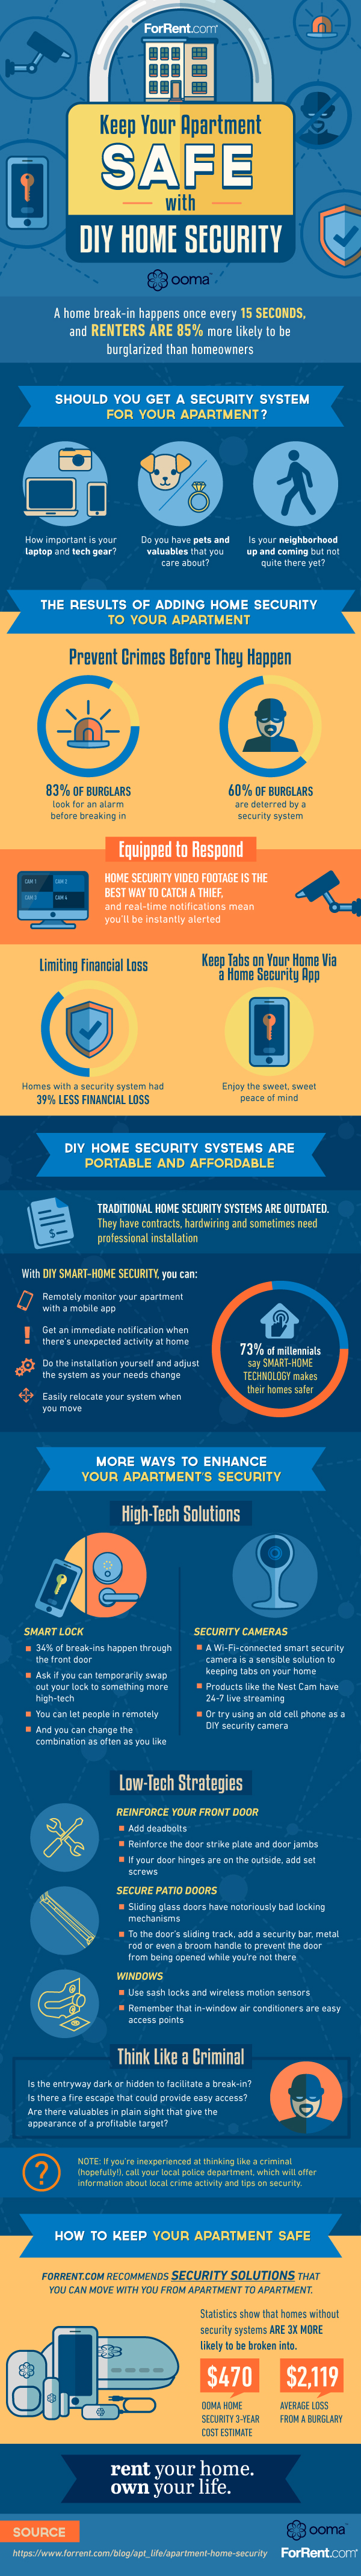 Infographic keep home safe DIY home security